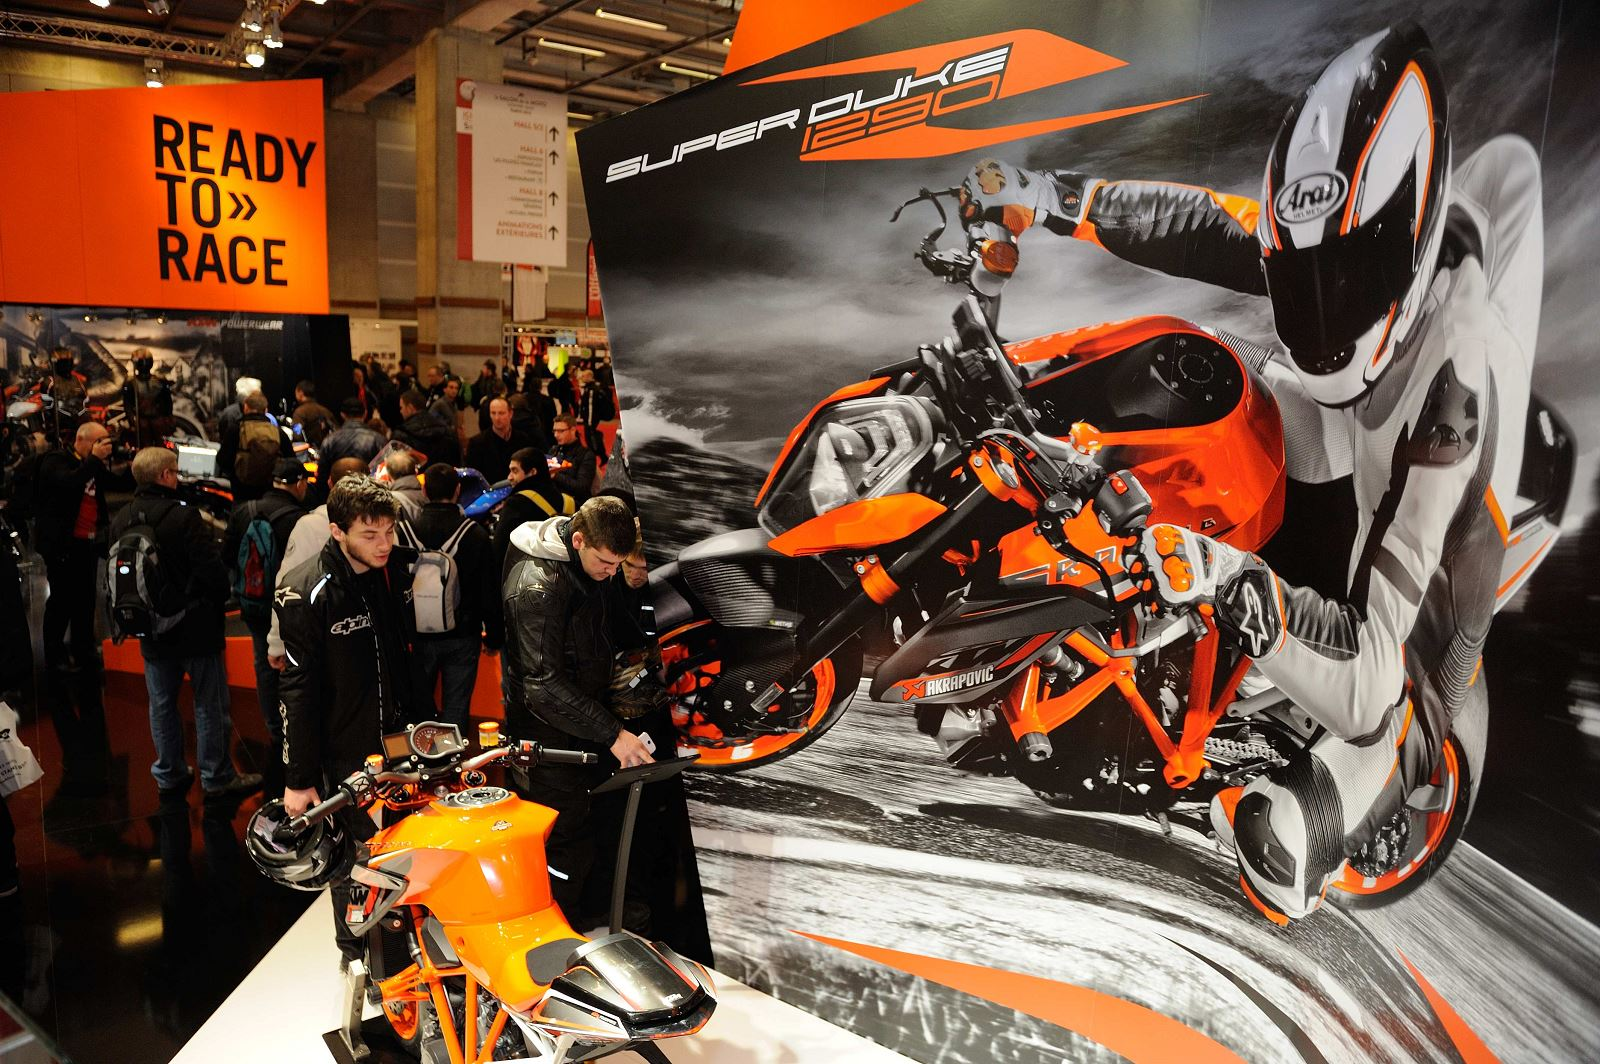 Salon De La Randonnée 2017 Paris Salon De Paris 2018 La Moto Sera Avec L 39automobile